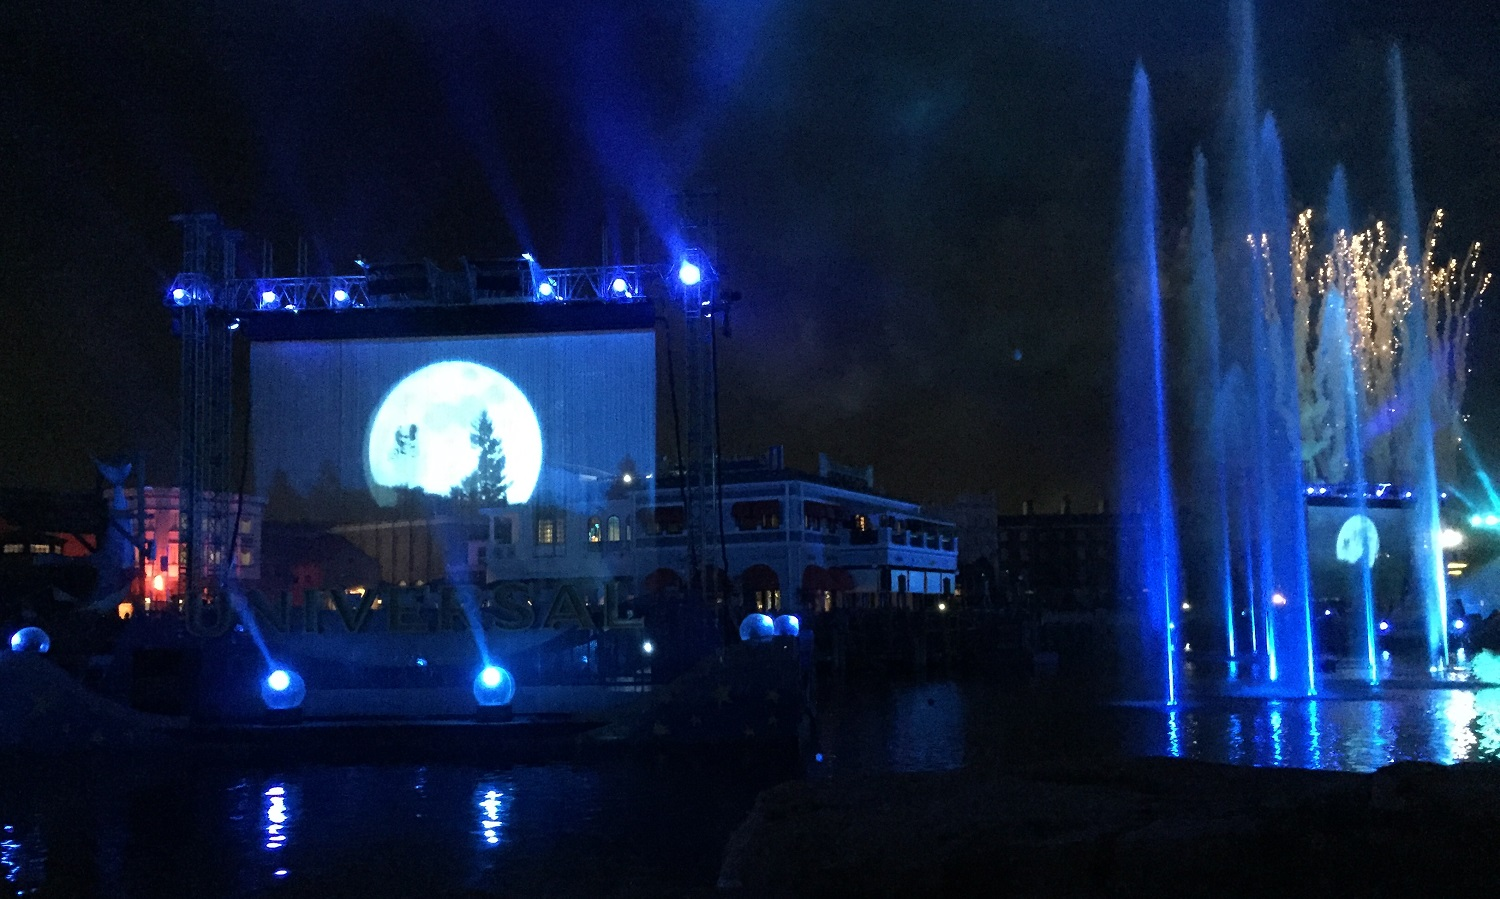 Movie clips, like this one from E.T the Extra-Terrestrial, were displayed on multiple screens in the lagoon.